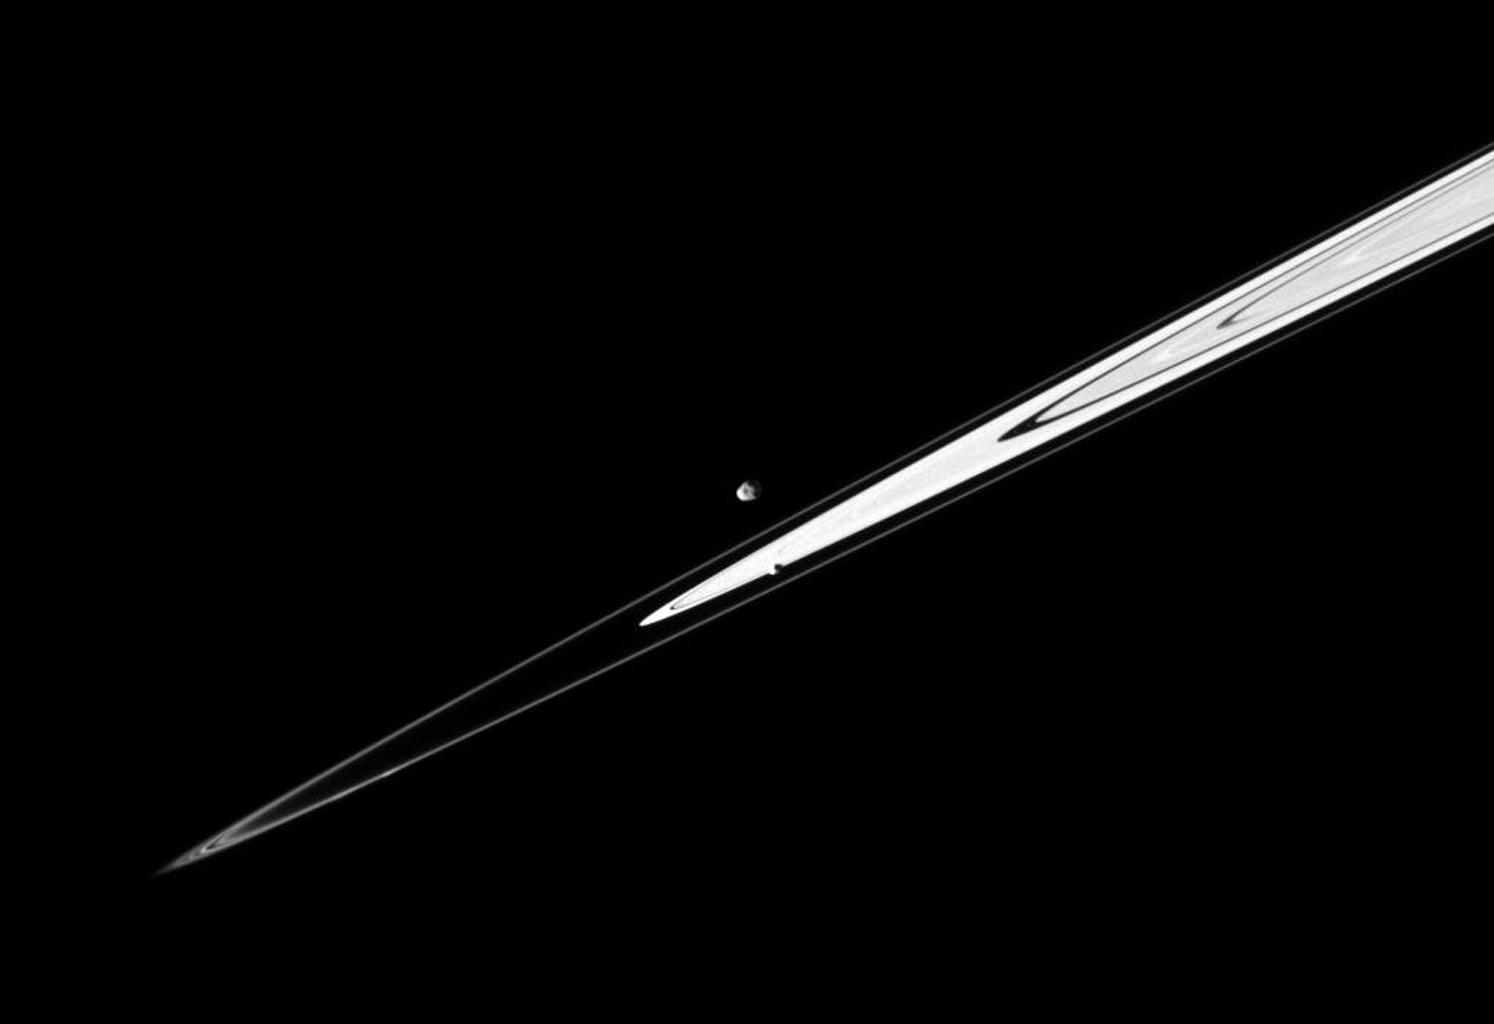 A pair of Saturn's small satellites, Janus and Pandora, accompany the planet's rings in this image from NASA's Cassini spacecraft presenting the view in dramatic diagonal fashion.